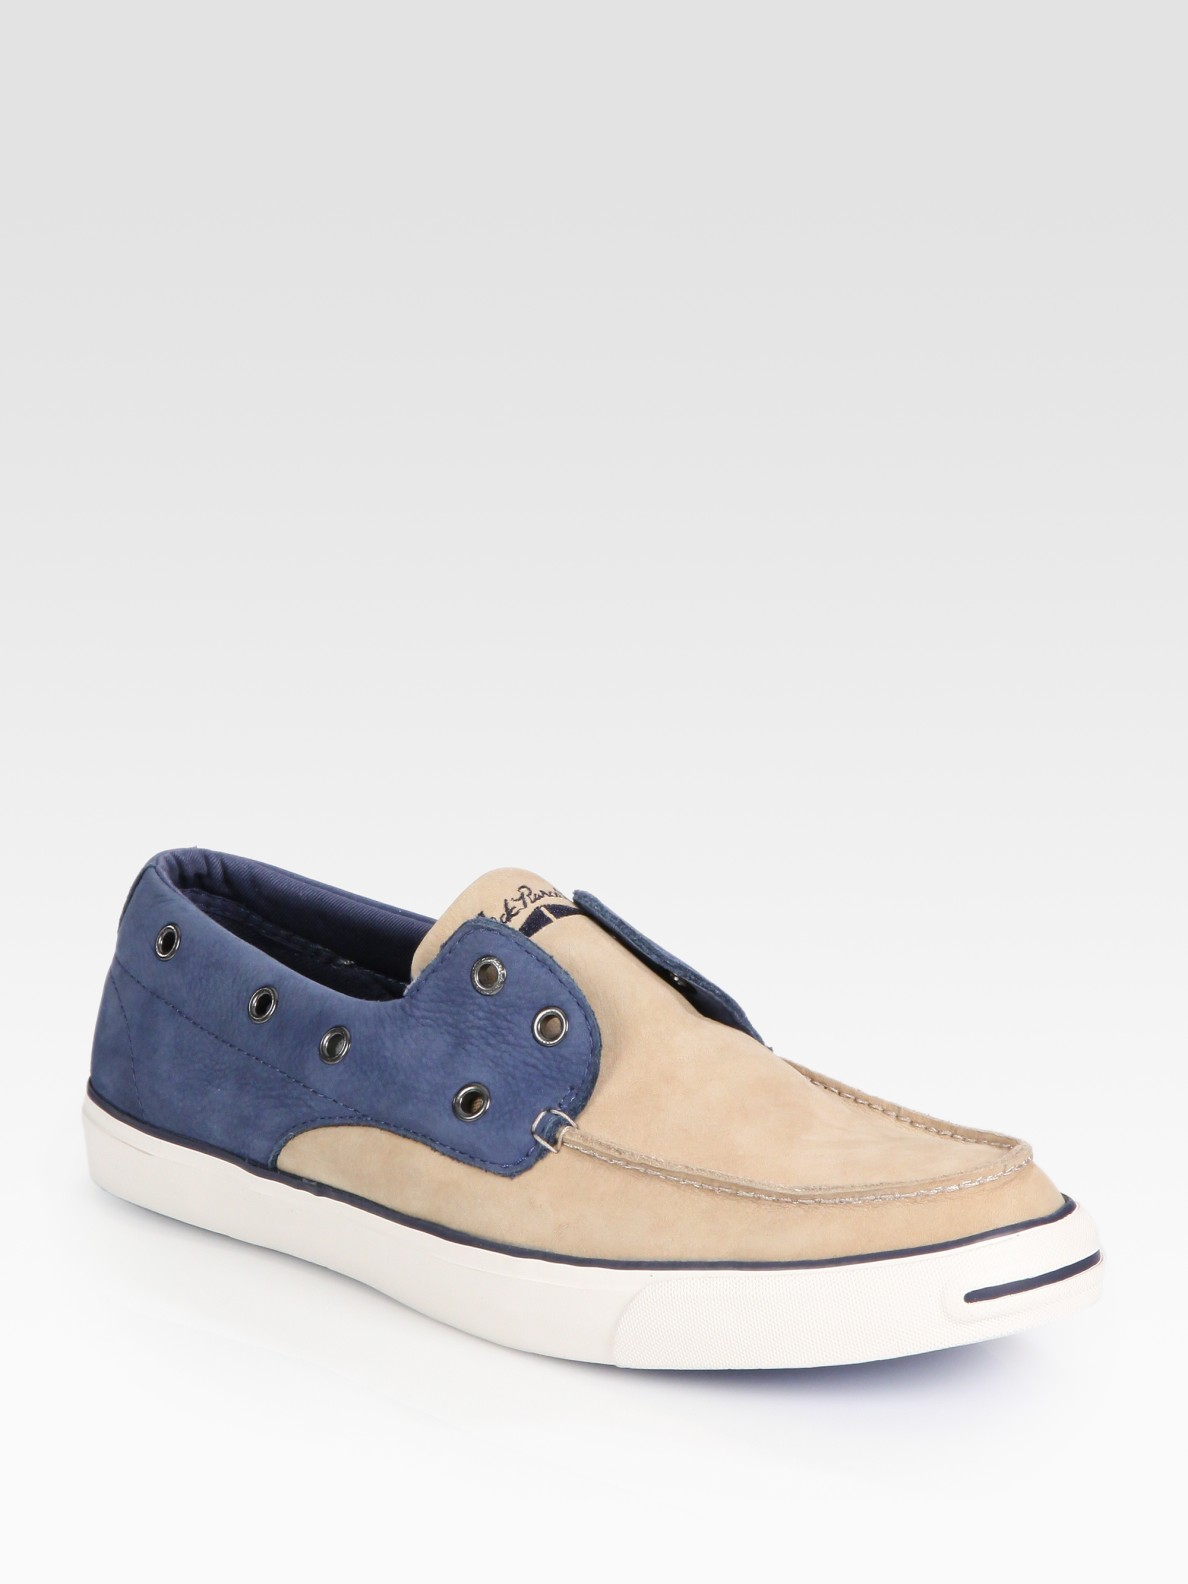 c1bdc1ab3acf ... uk lyst converse jack purcell two tone laceless boat shoes in brown  e8036 fafbb